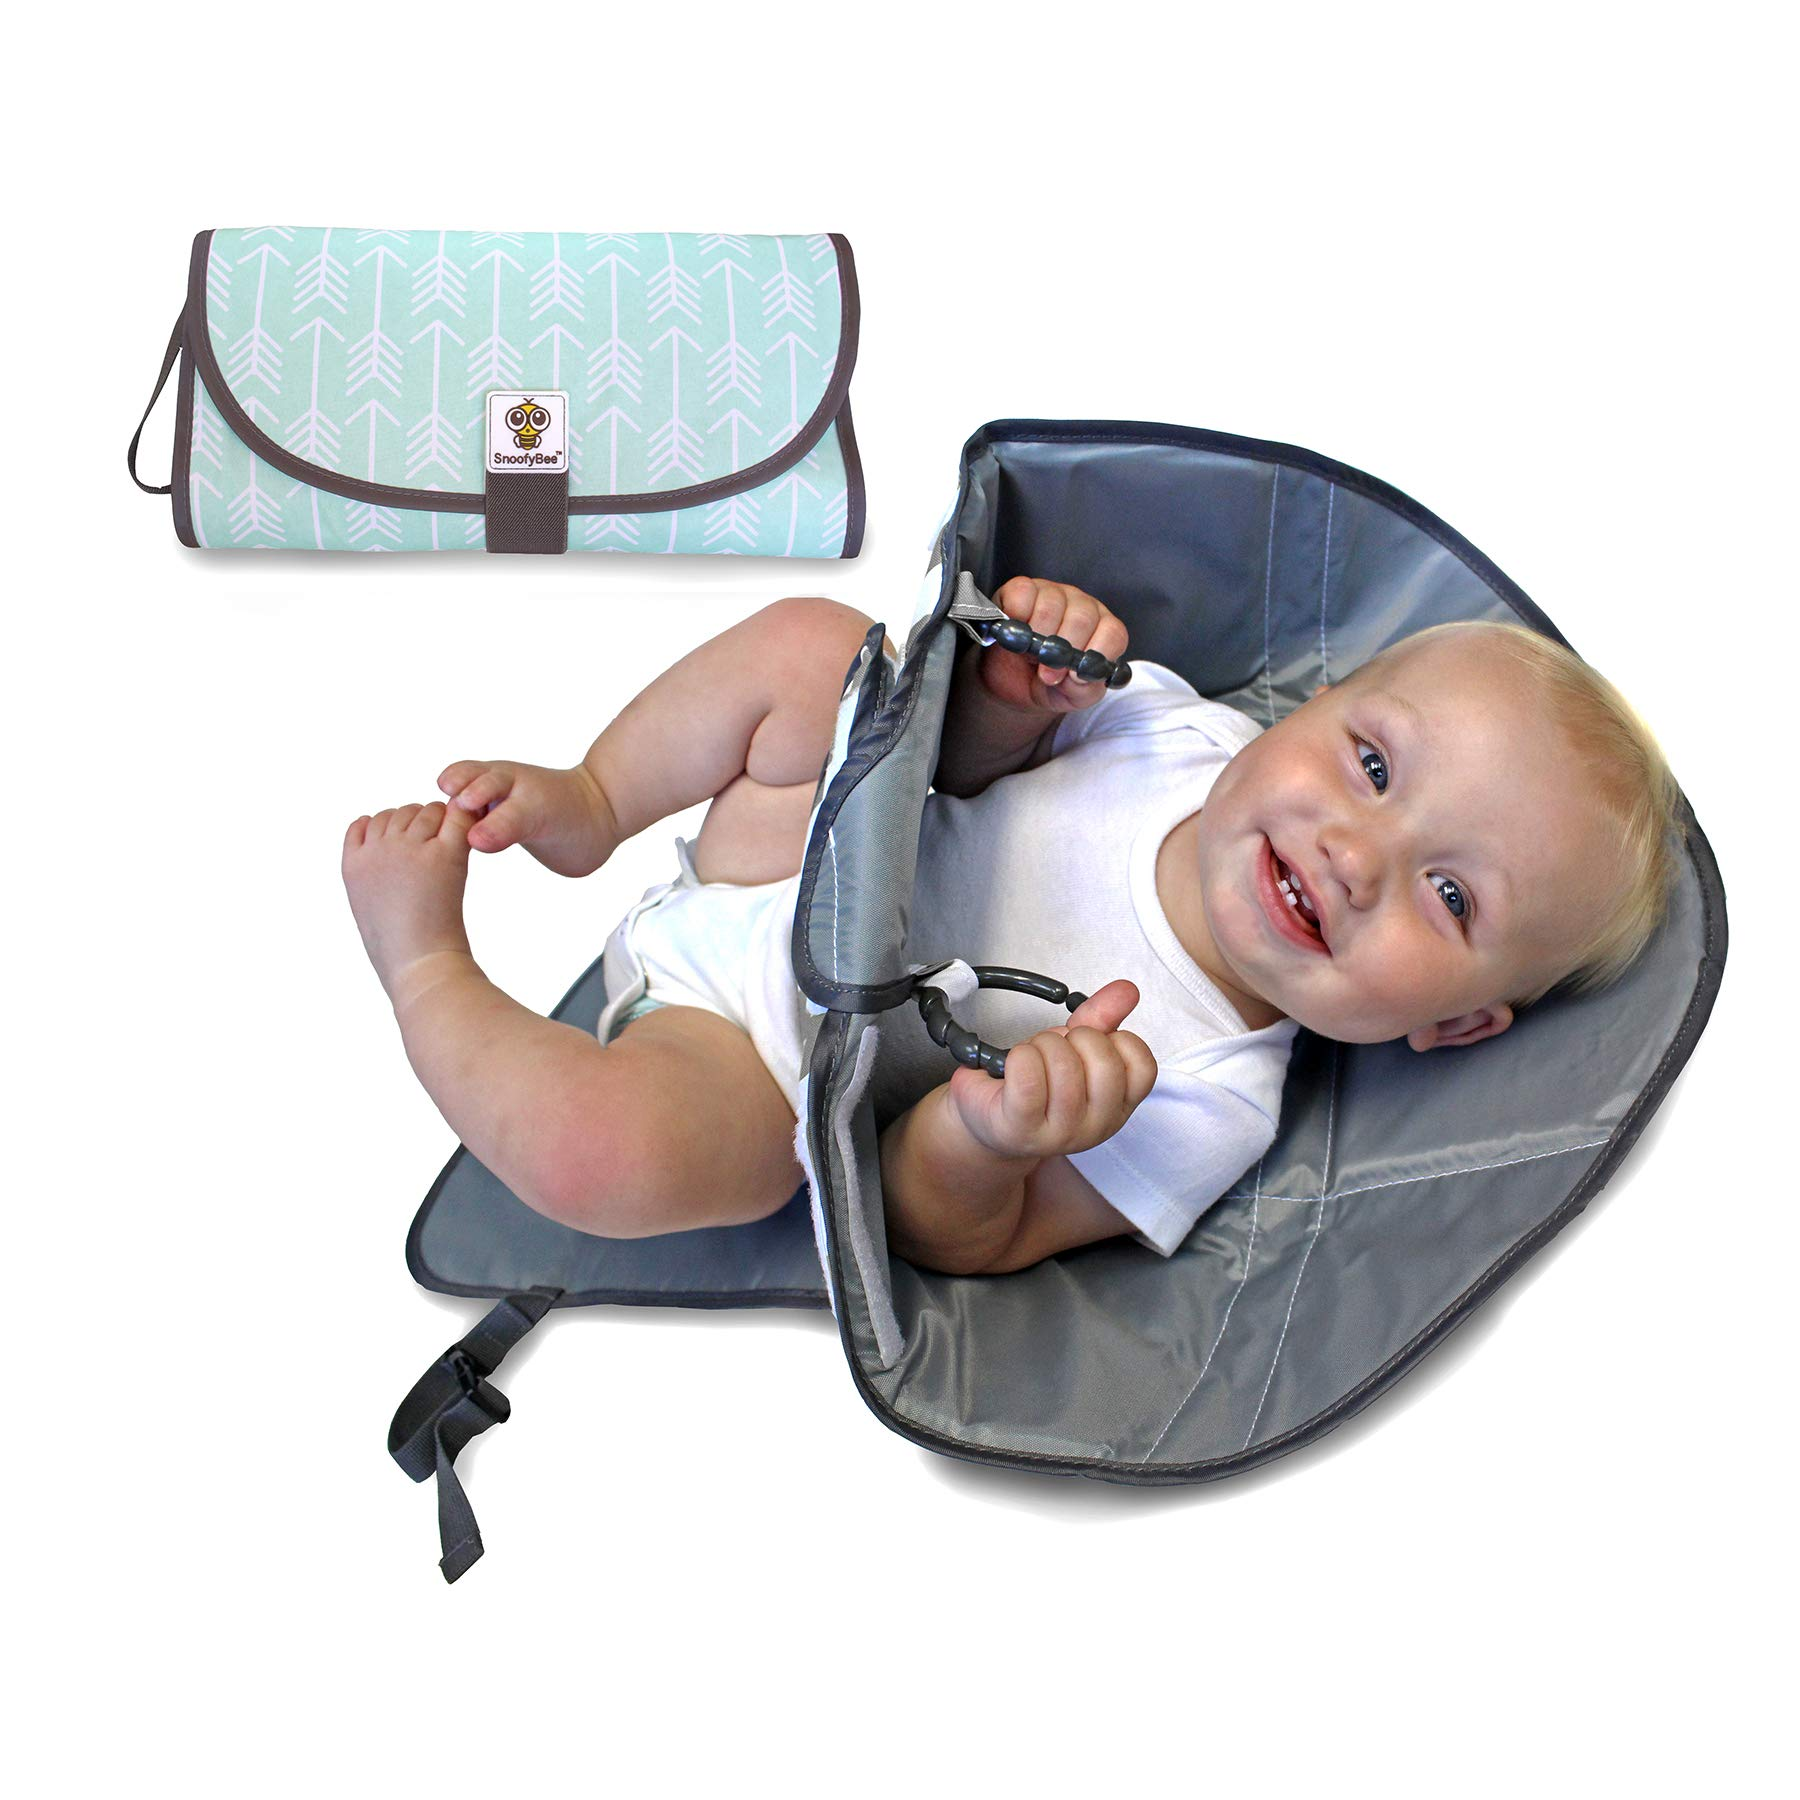 SnoofyBee Portable Clean Hands Changing Pad. 3-in-1 Diaper Clutch, Changing Station, and Diaper-Time Playmat with Redirection Barrier for use with Infants, Babies and Toddlers (Arrows)